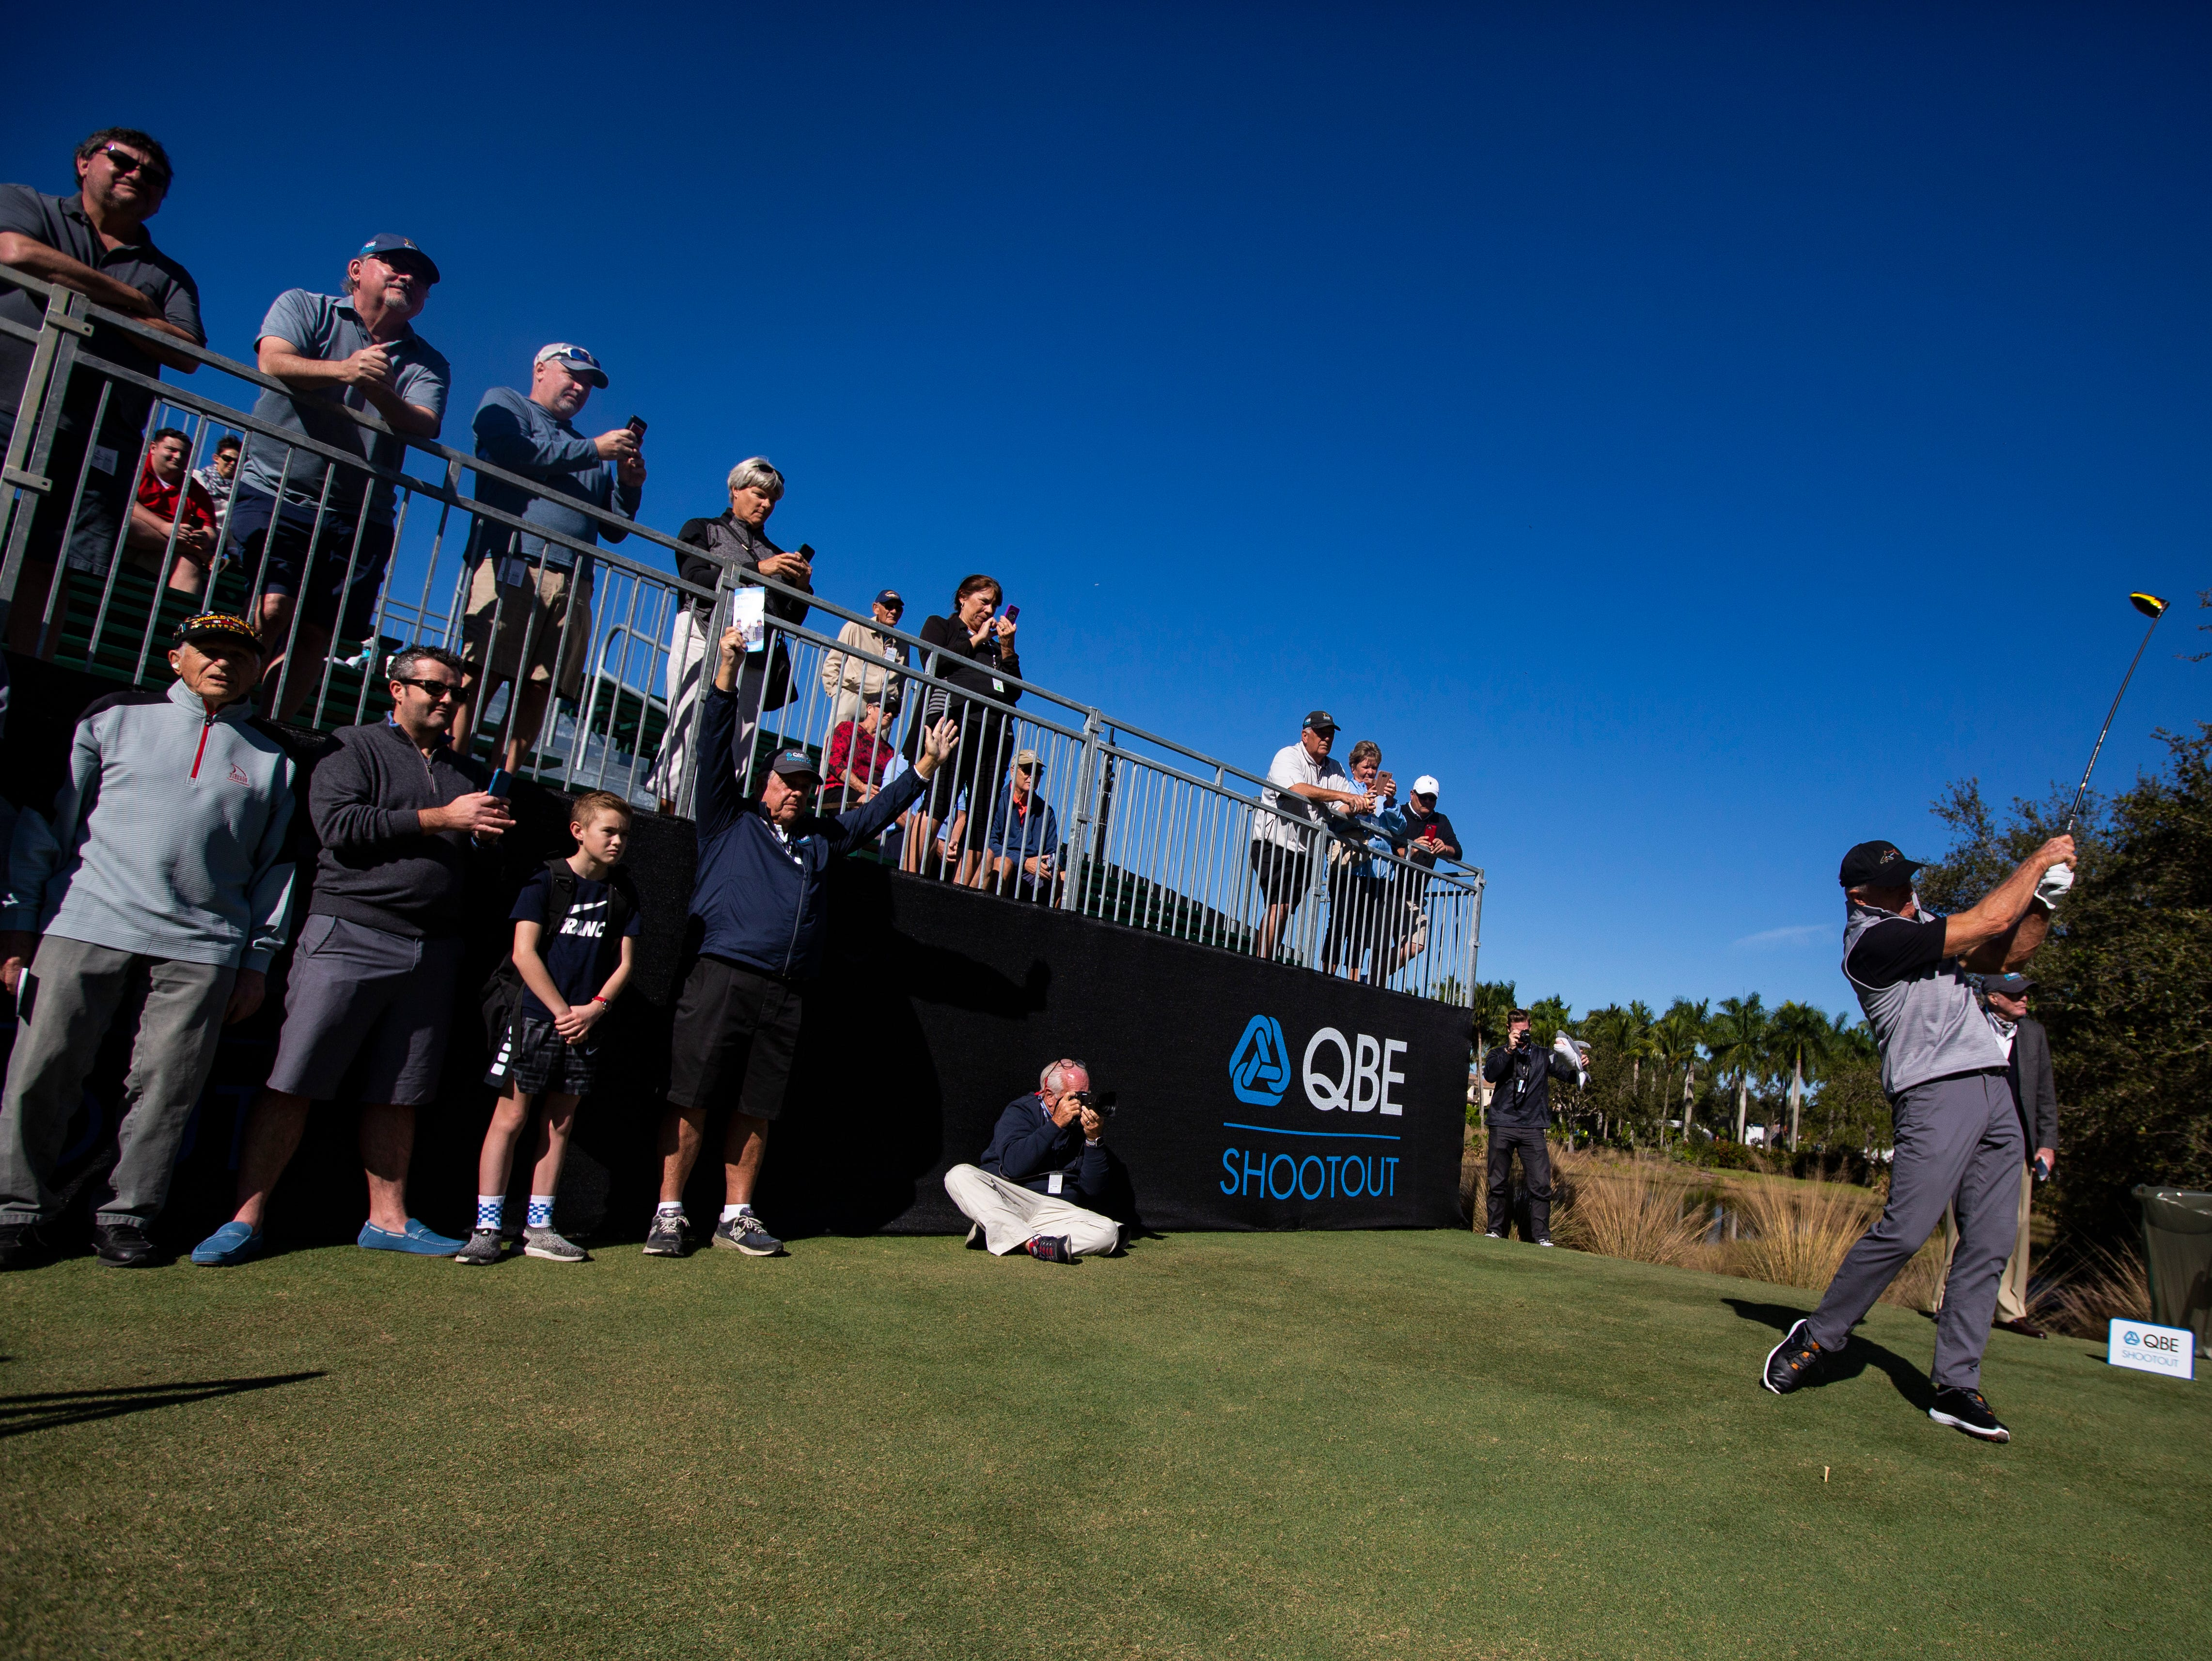 Greg Norman of Australia tees off during the 30th annual QBE Shootout Pro - Amateur round two, on Thursday, Dec. 6, 2018, at Tiburón Golf Club in Naples.